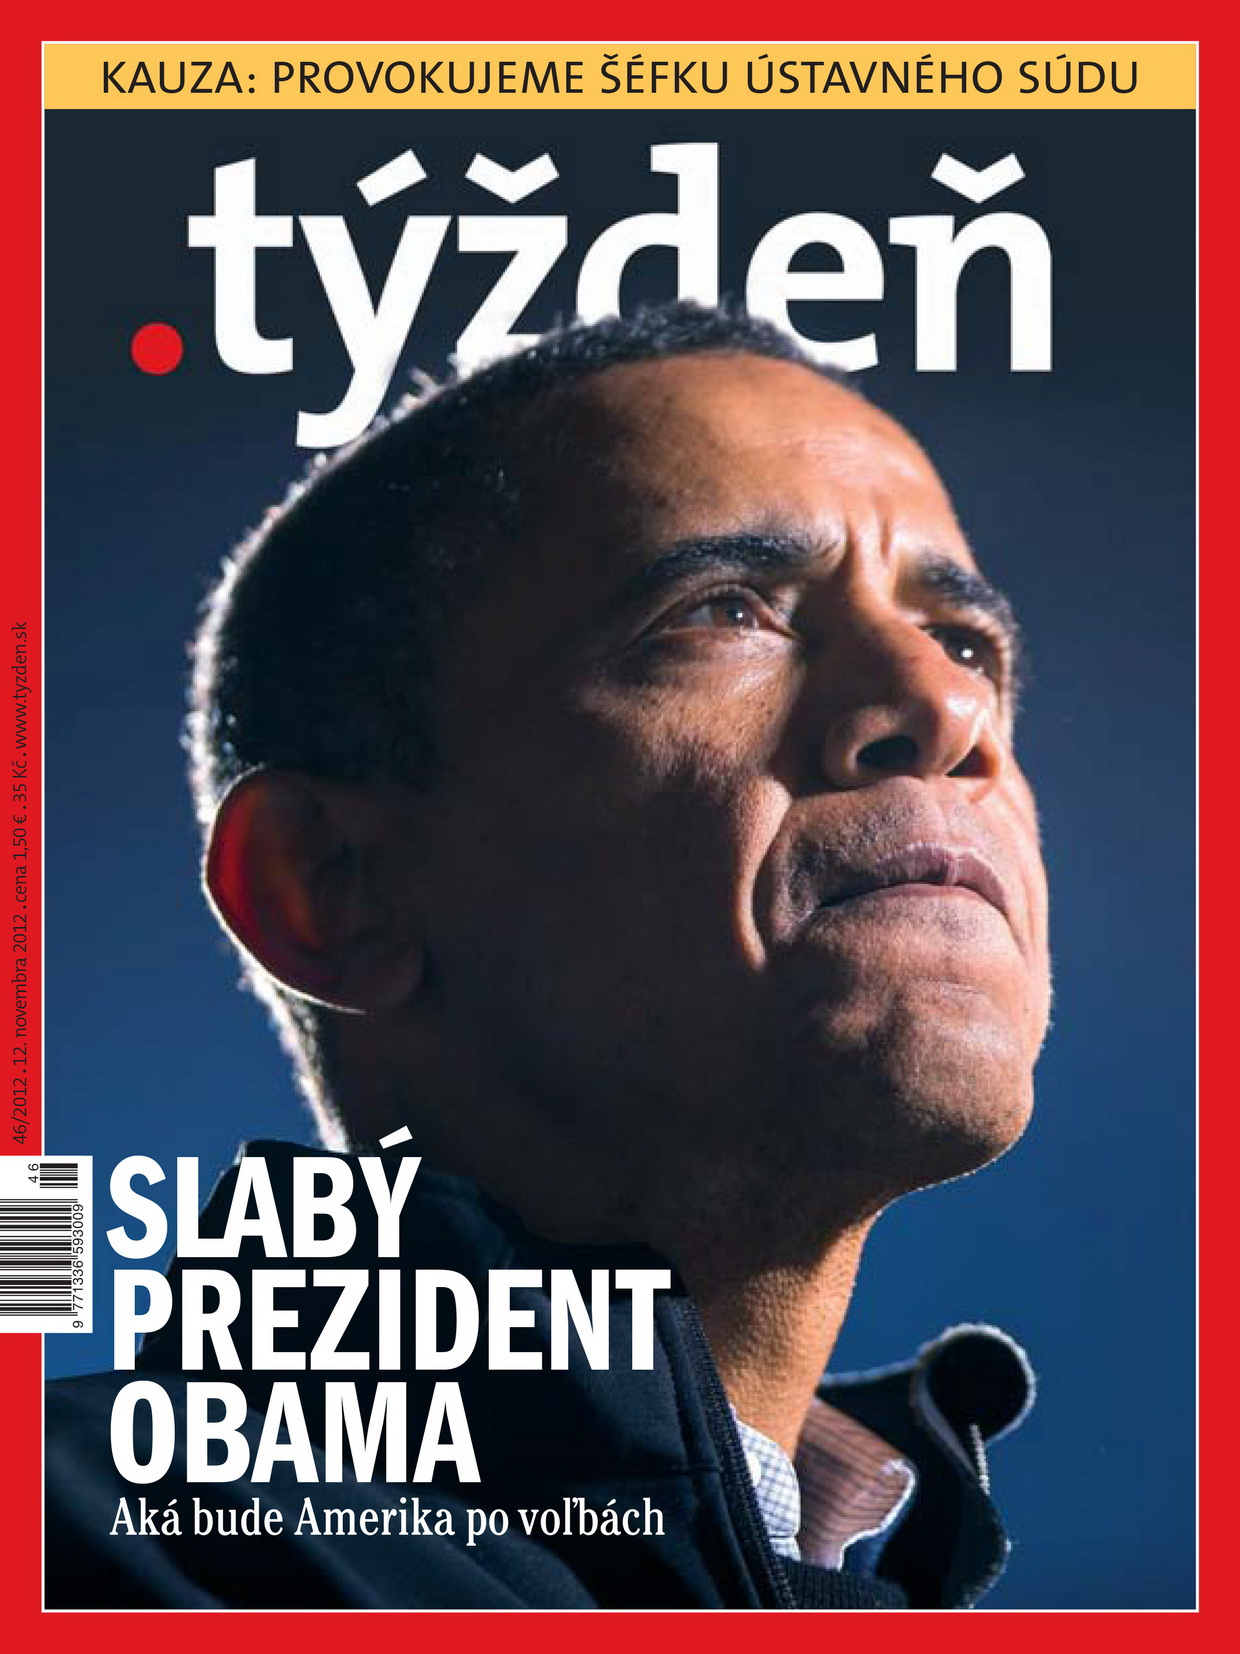 In the landlocked Central European country of Slovakia, the news magazine .týždeň is making its photographic voice heard loud and clear.